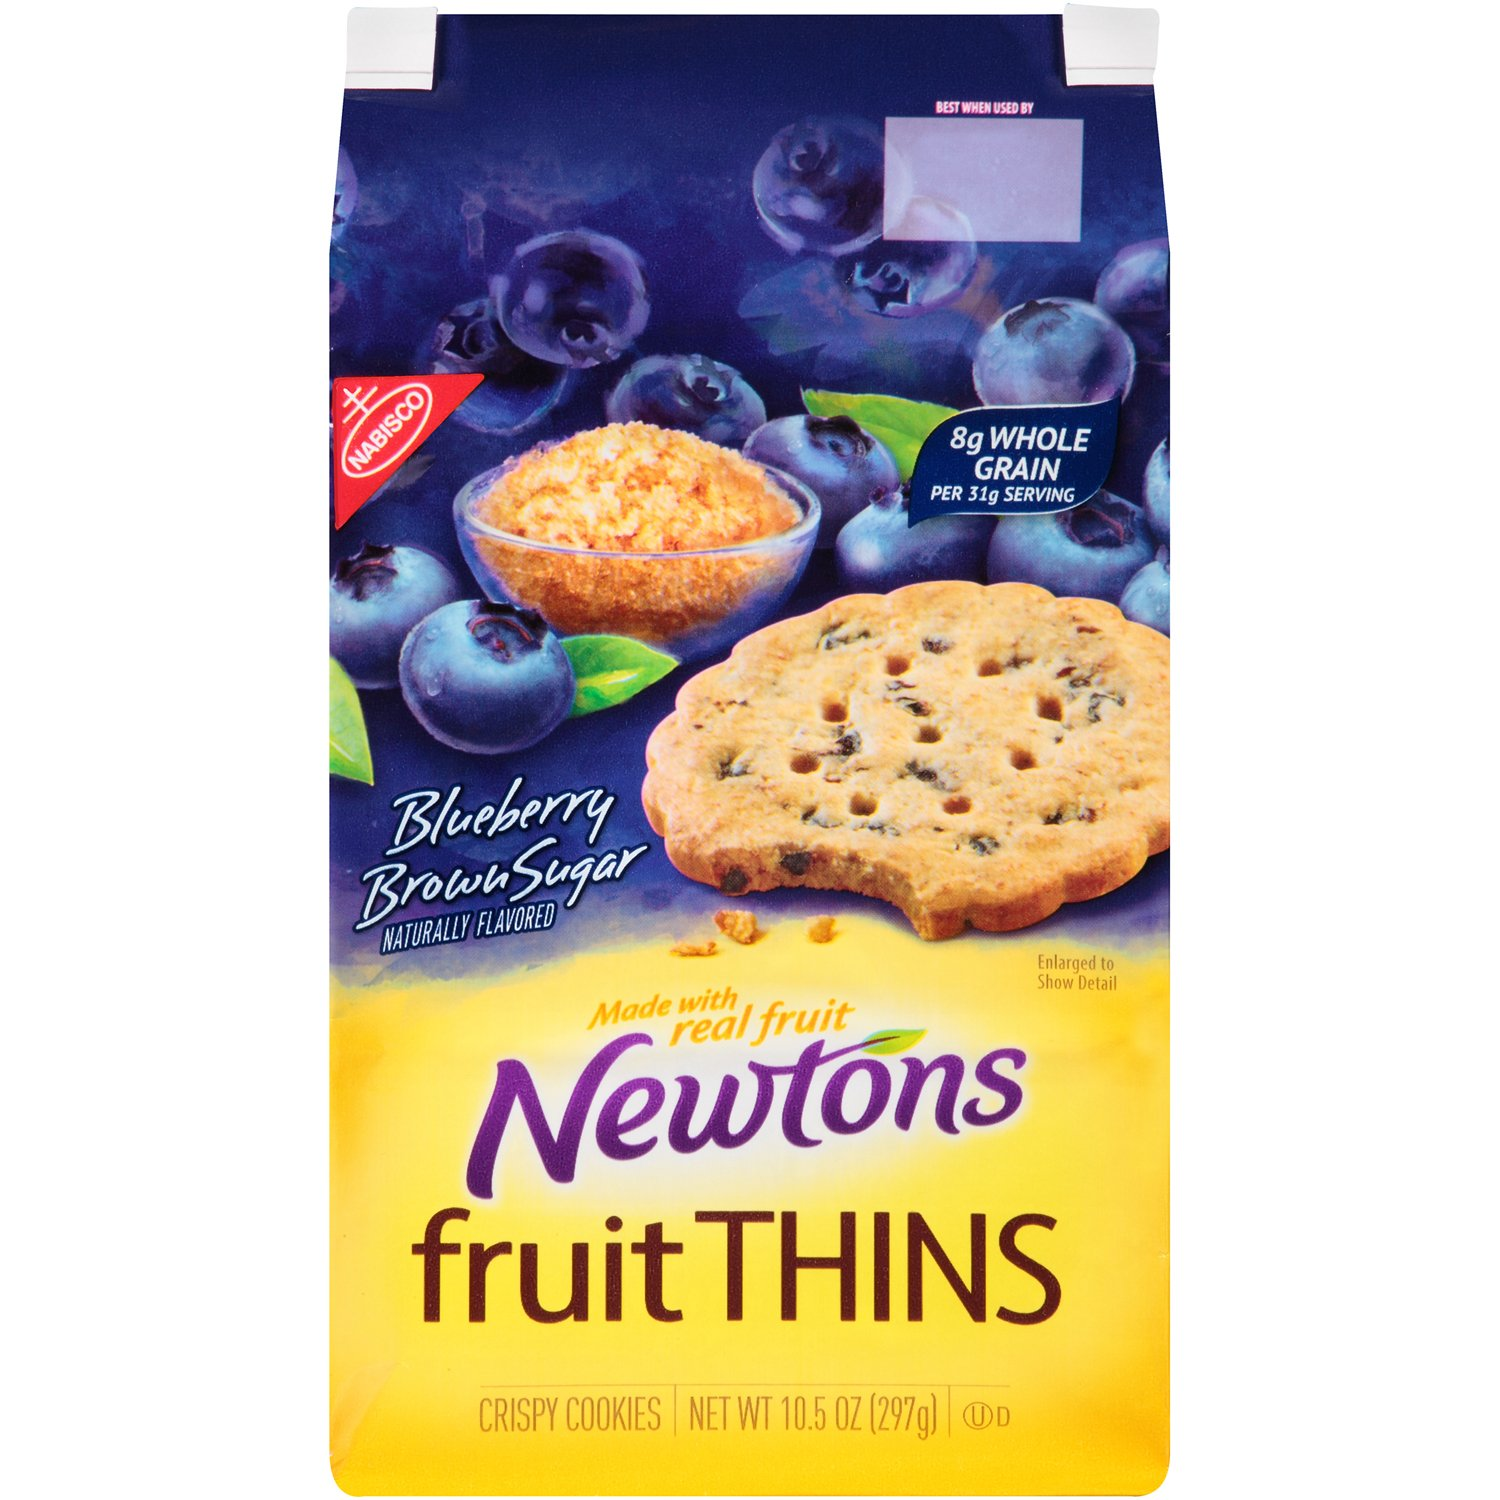 Newton's Fruit Thins